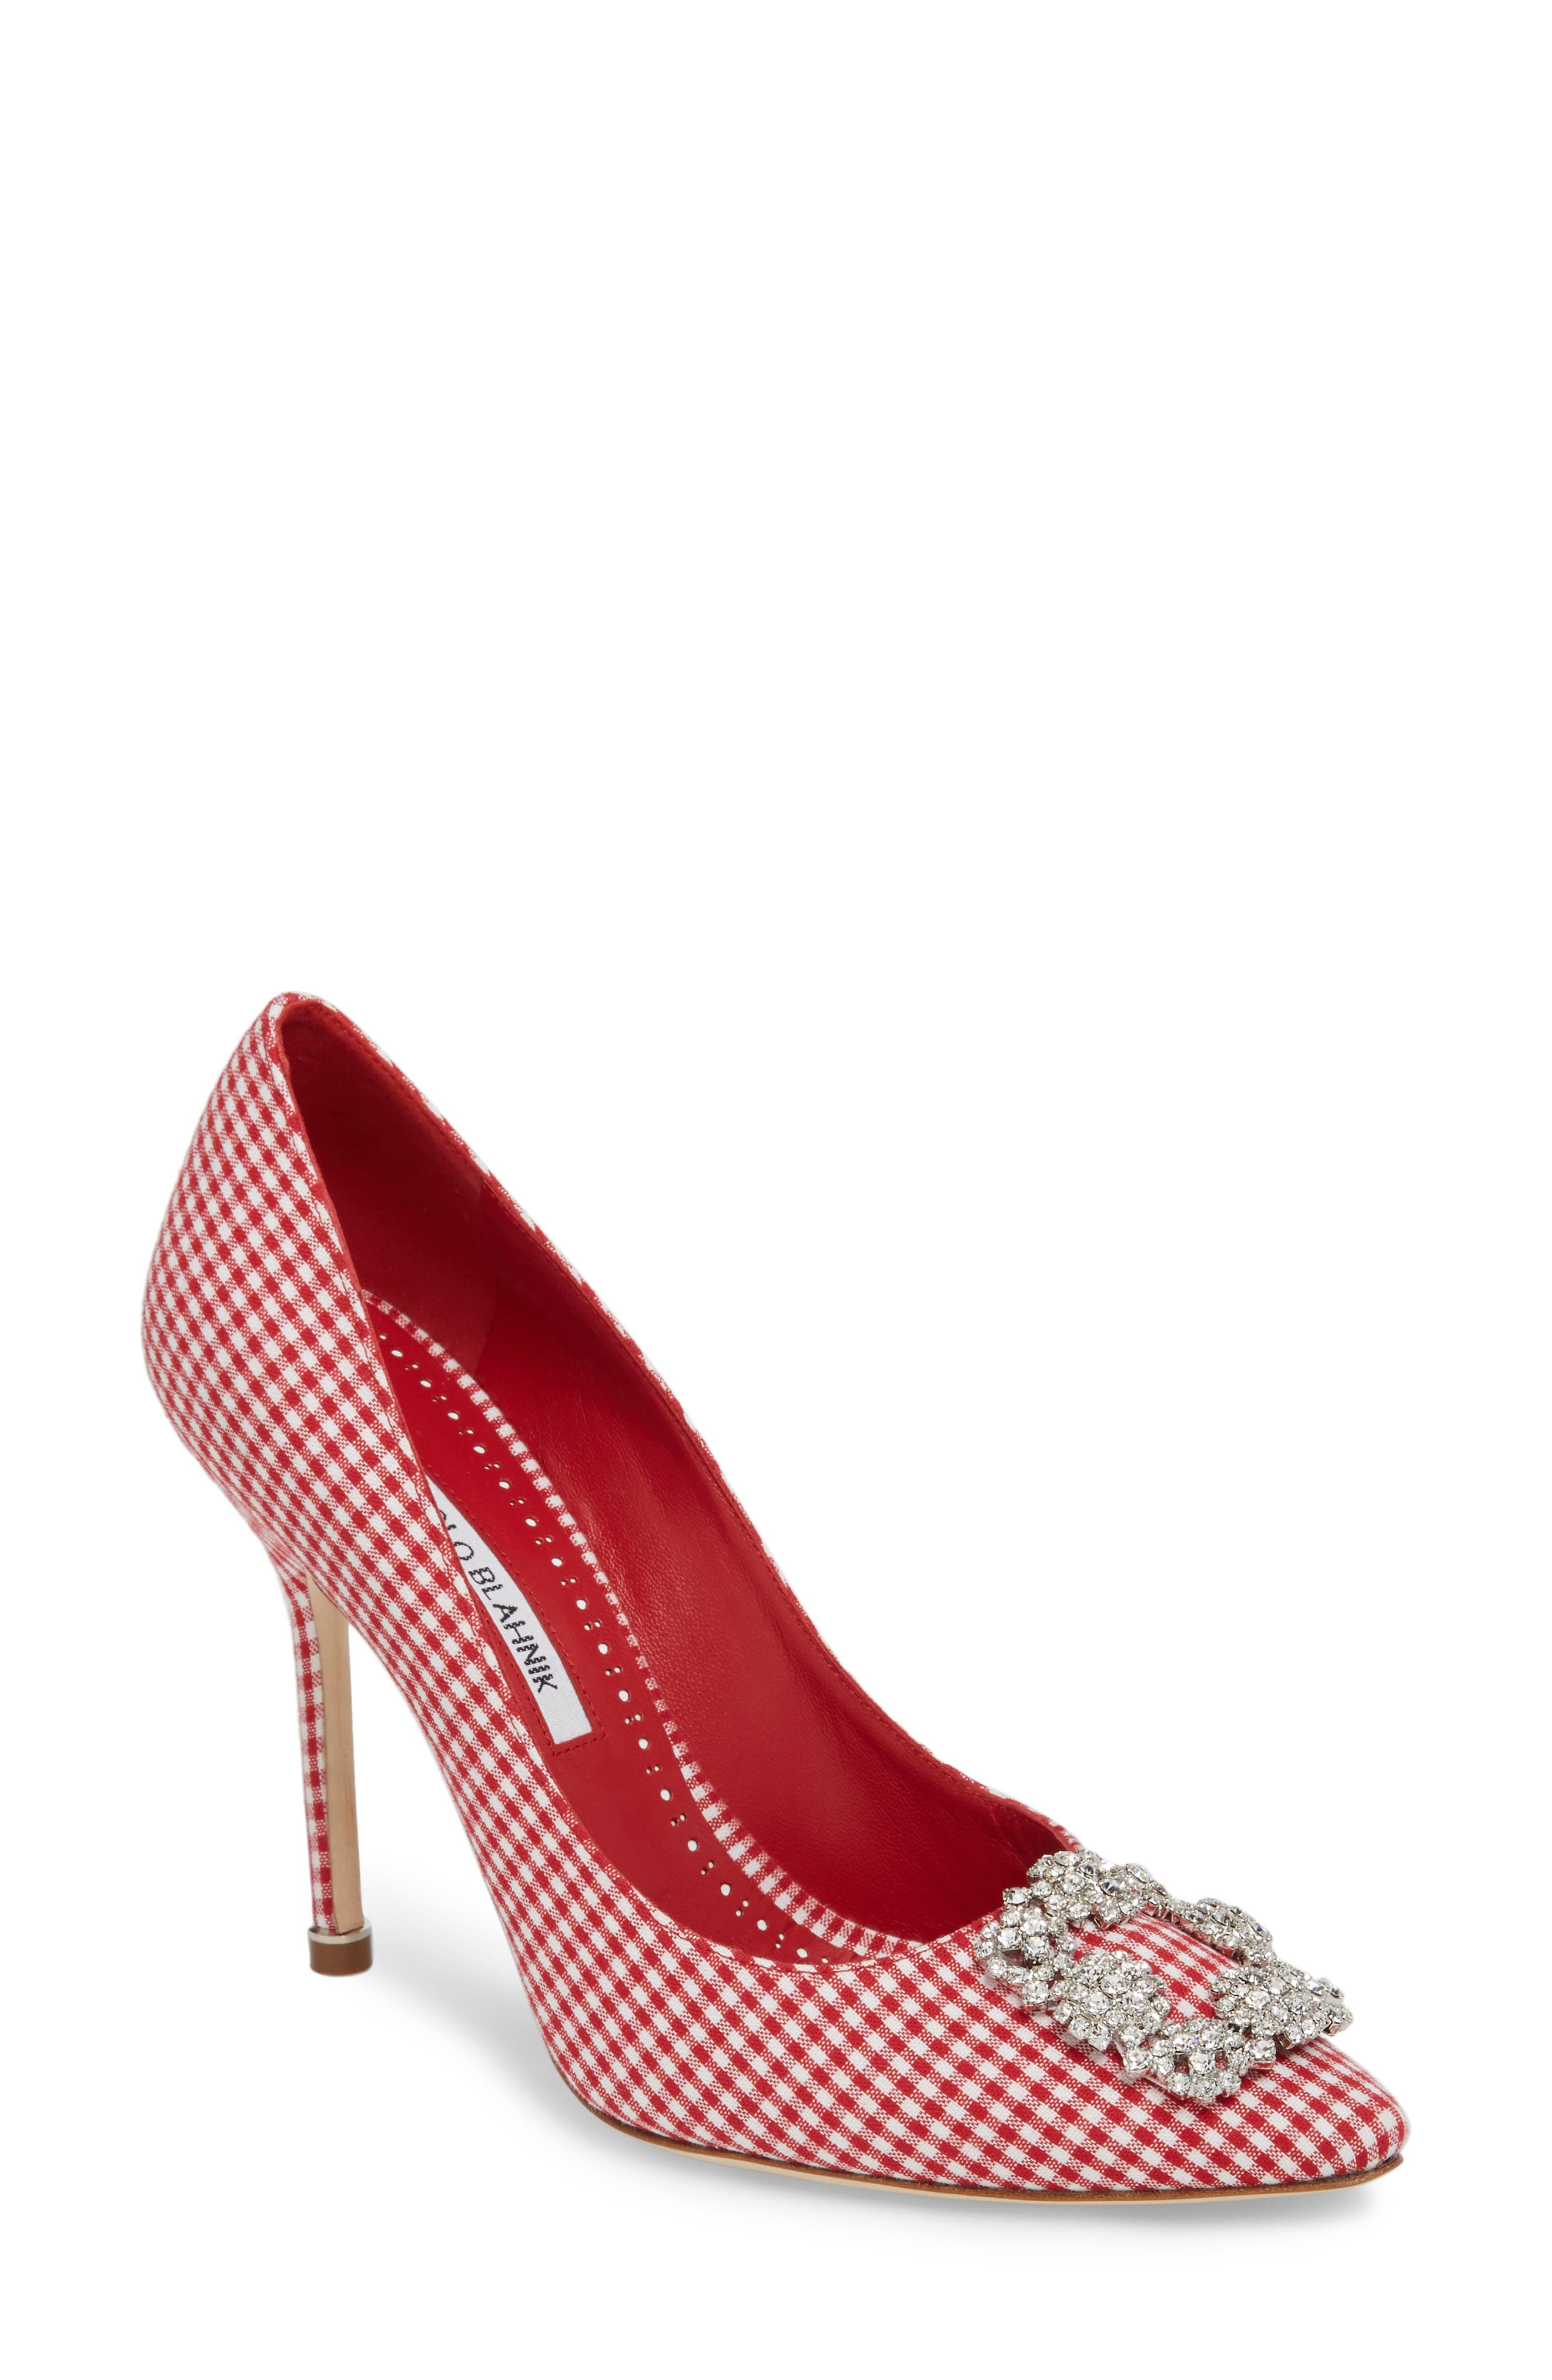 'Hangisi' Ornamented Pump,                             Main thumbnail 1, color,                             Red Gingham